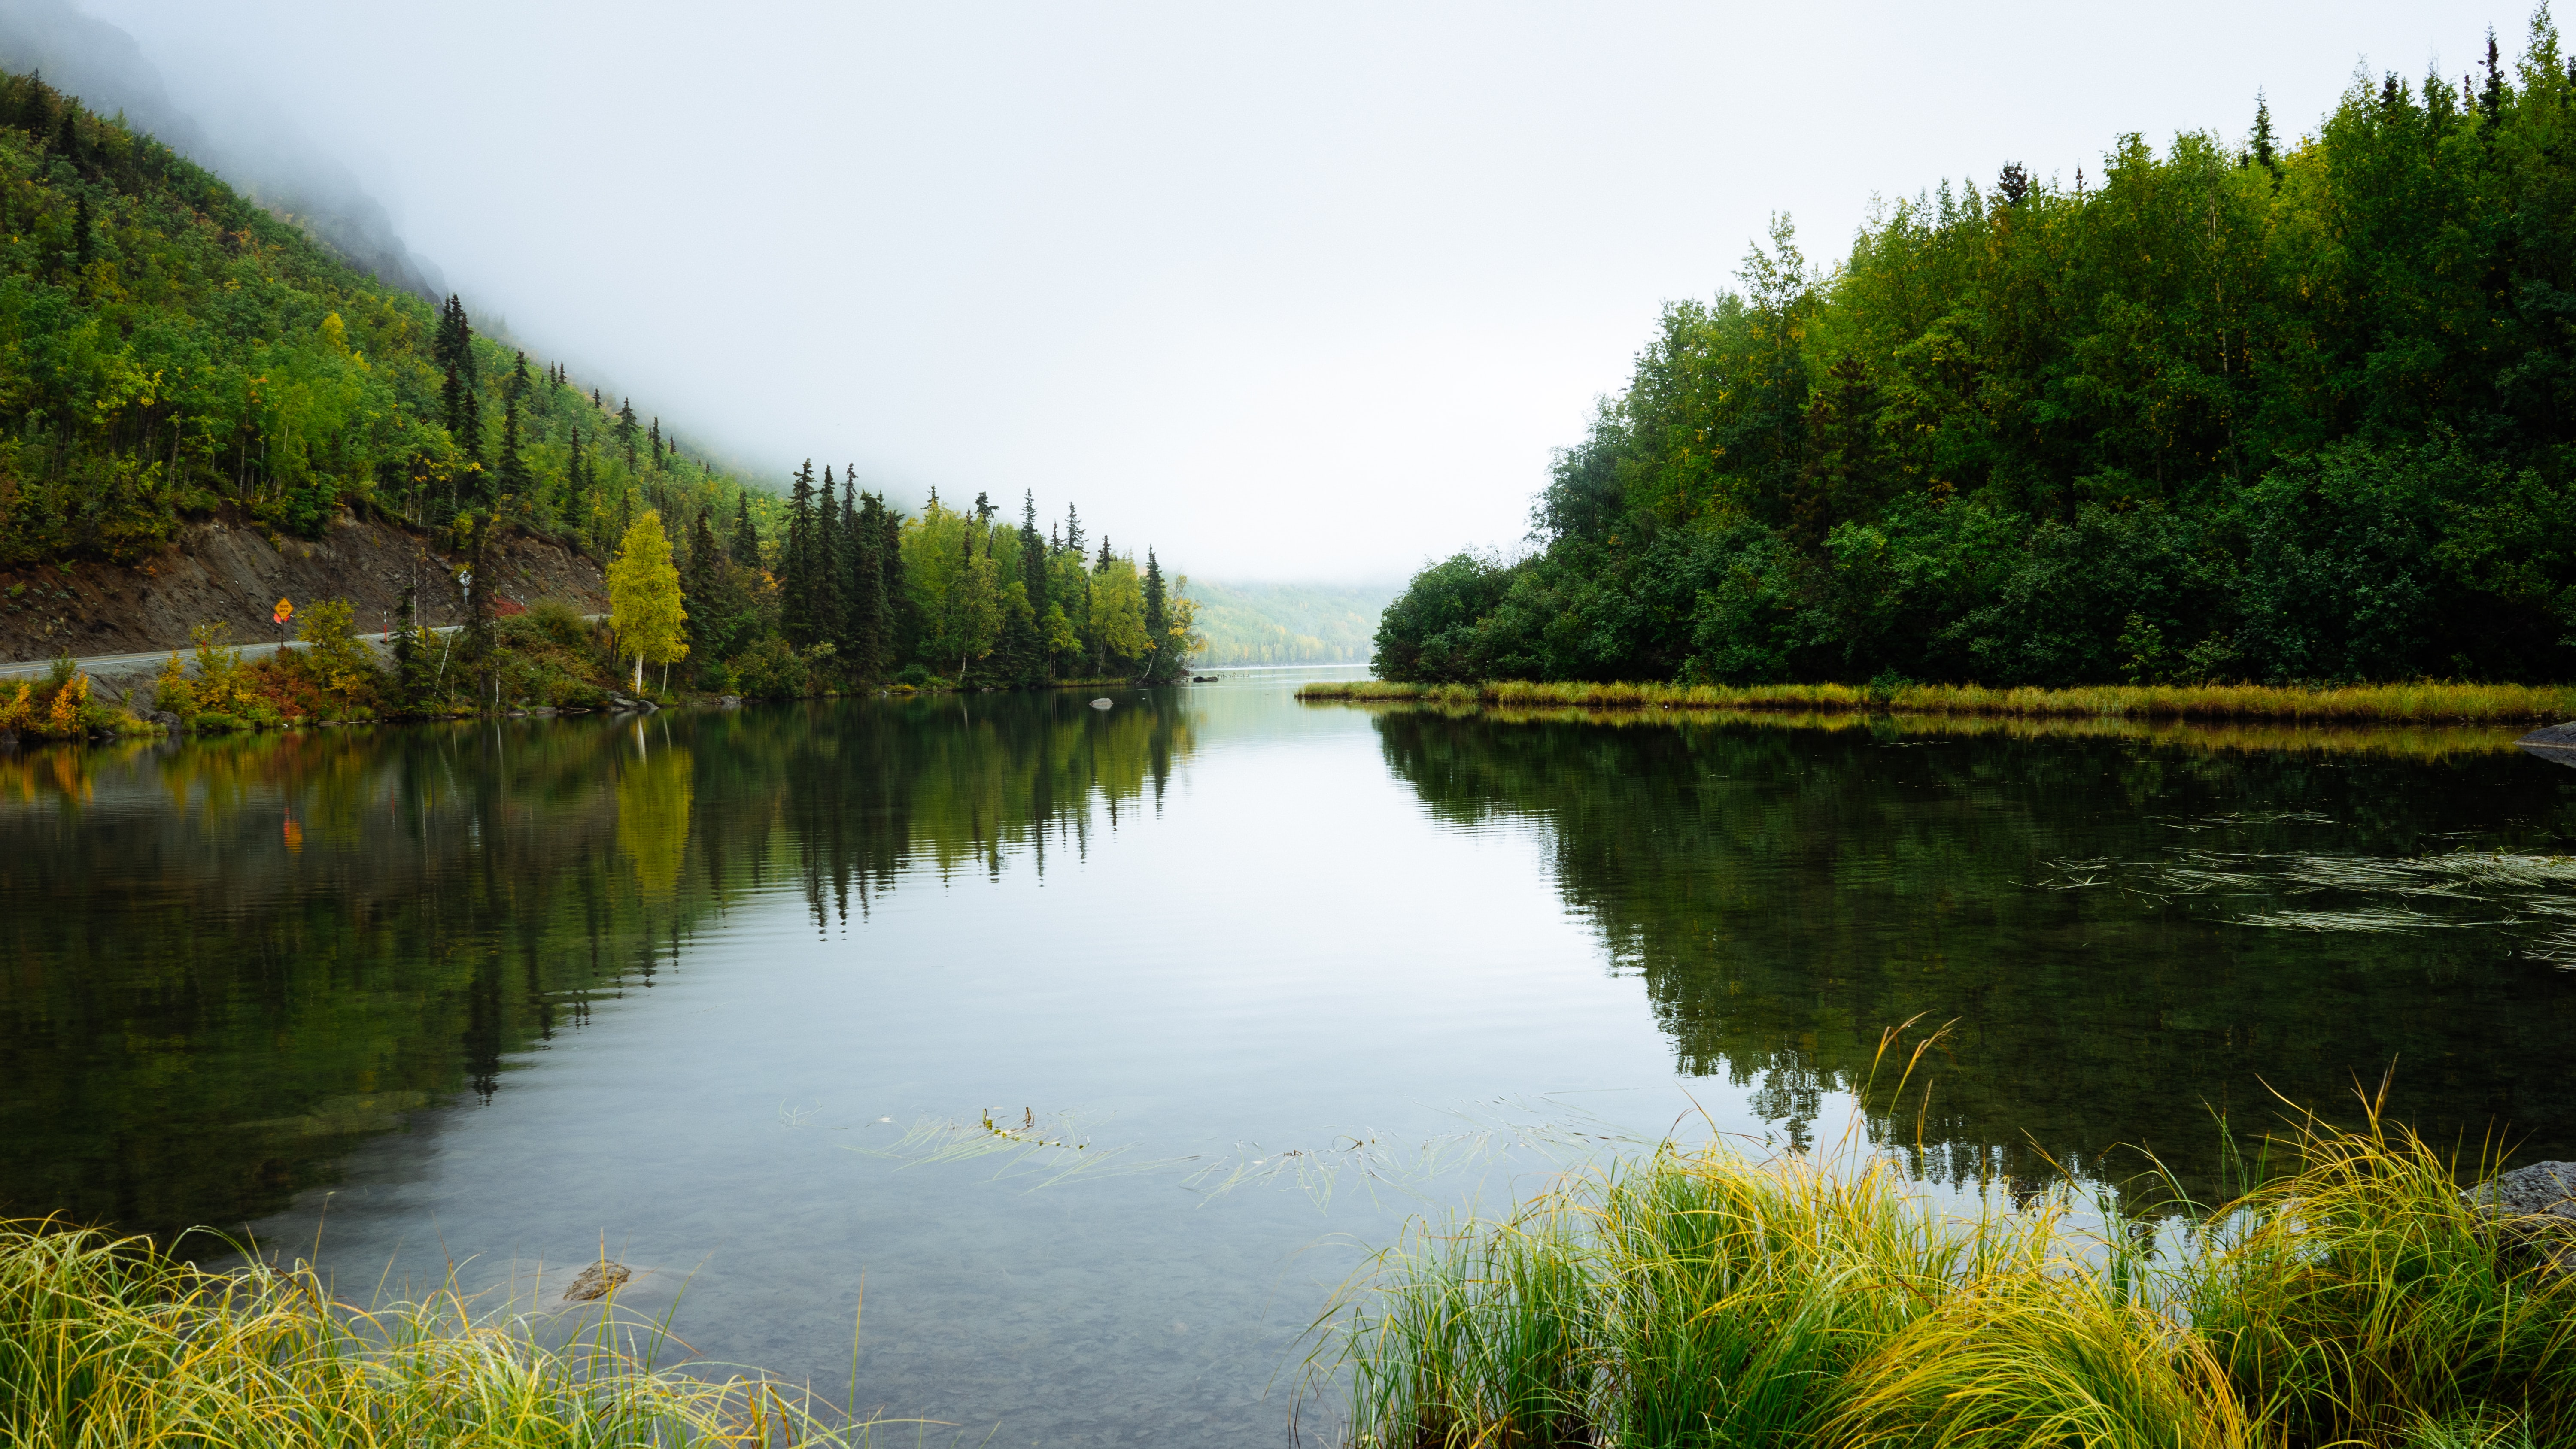 Mist coming down on a quiet lake in Alaska